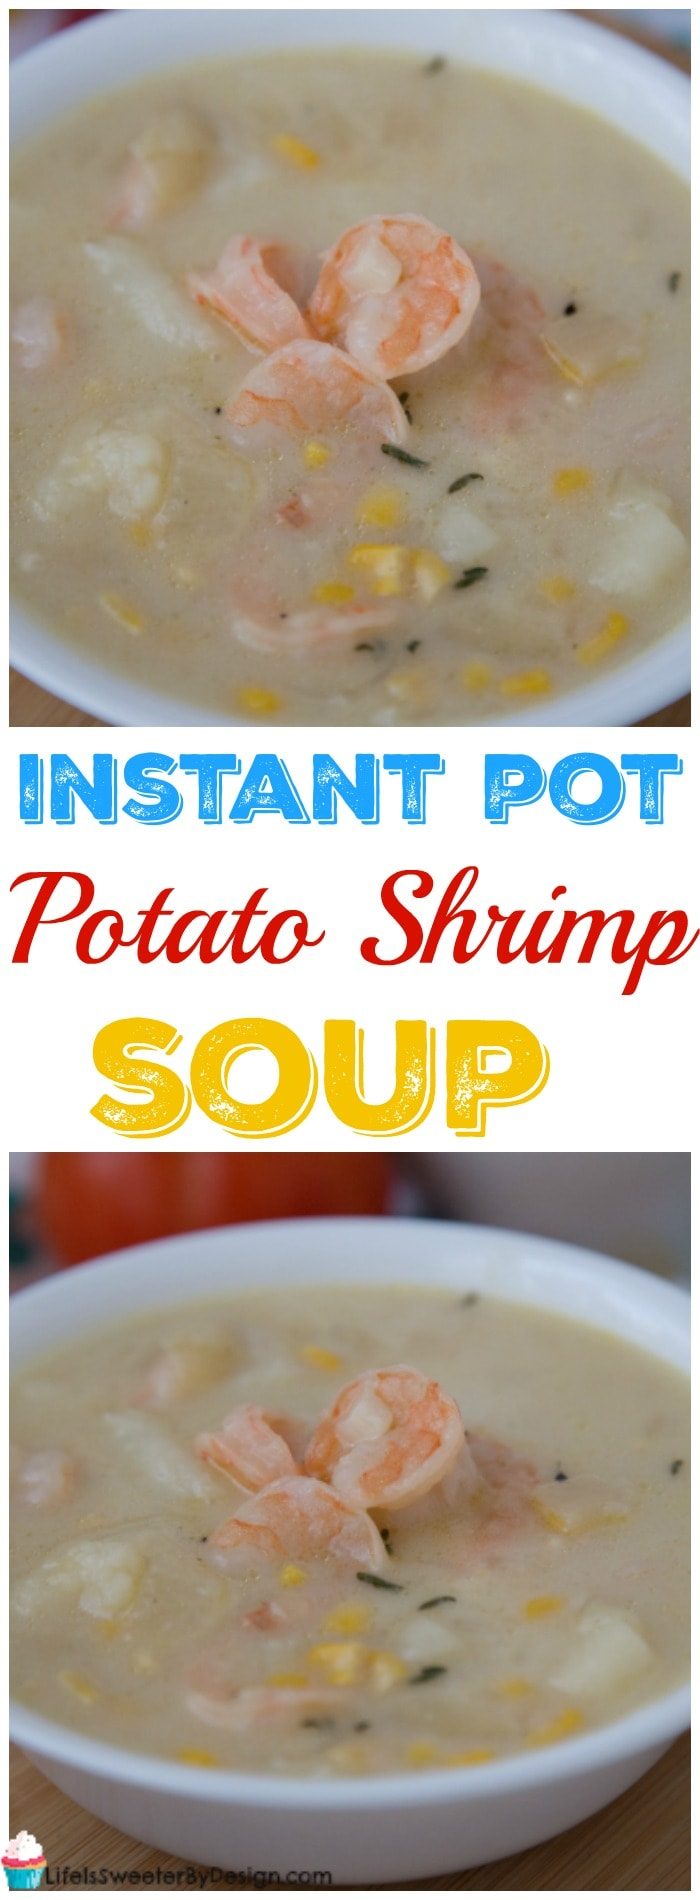 Weight Watchers Instant Pot Potato and Shrimp Soup is delicious and very easy to make. This is a Weight Watchers recipe you will be making a lot!